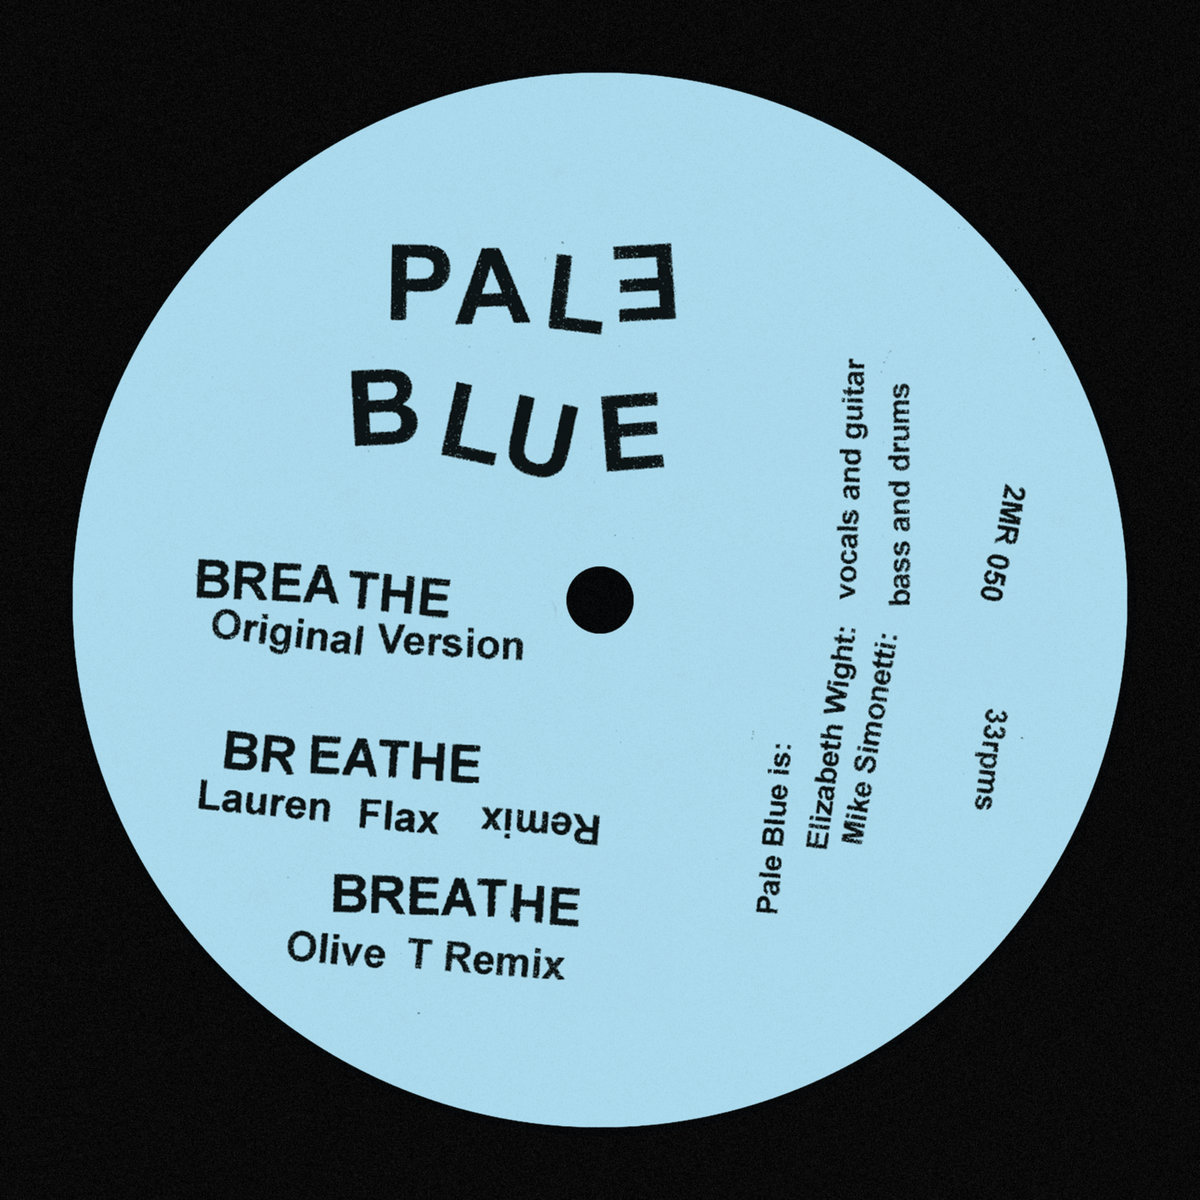 Pale Blue's new EP 'Breathe' available on vinyl or download in the store TOMORROW